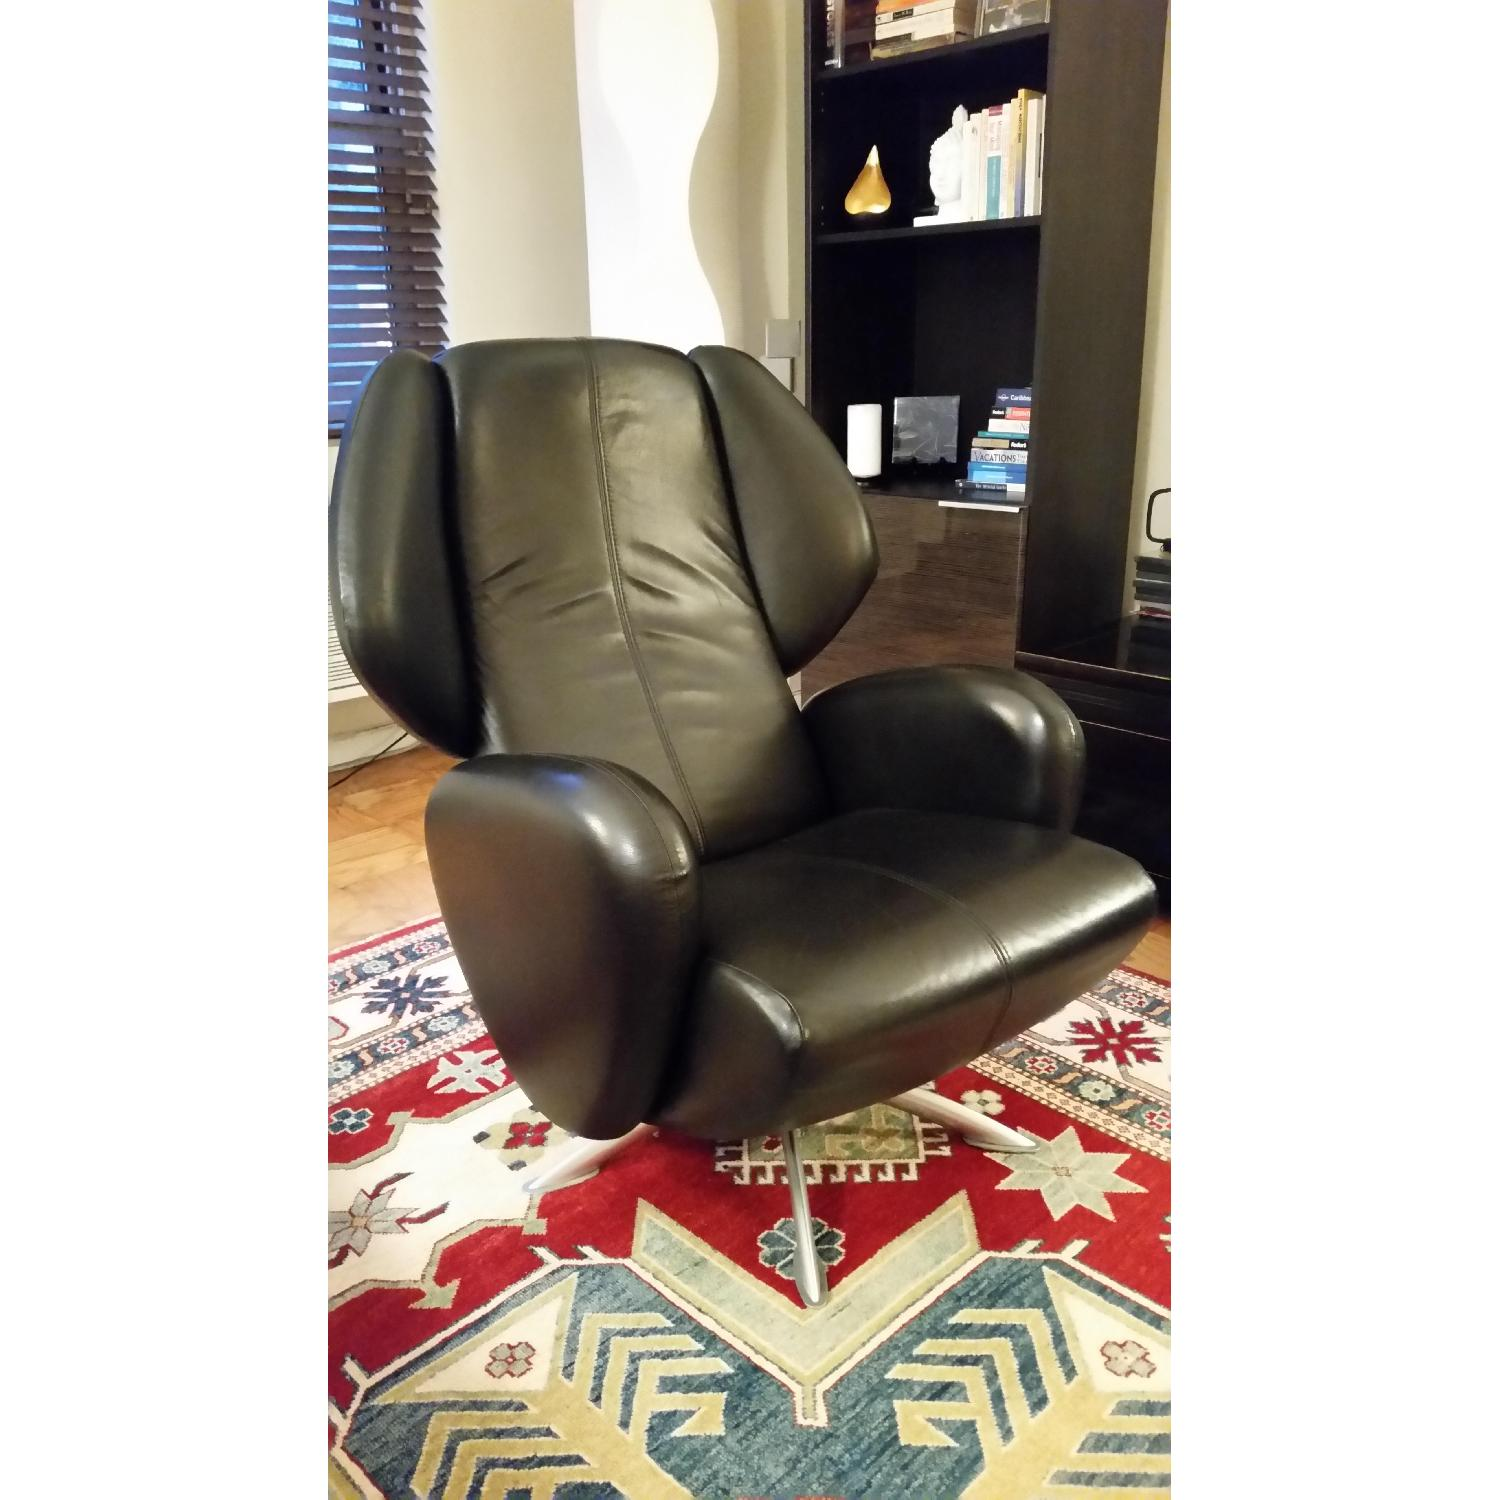 Lee's Art Shop Leather Reading Chair - image-2